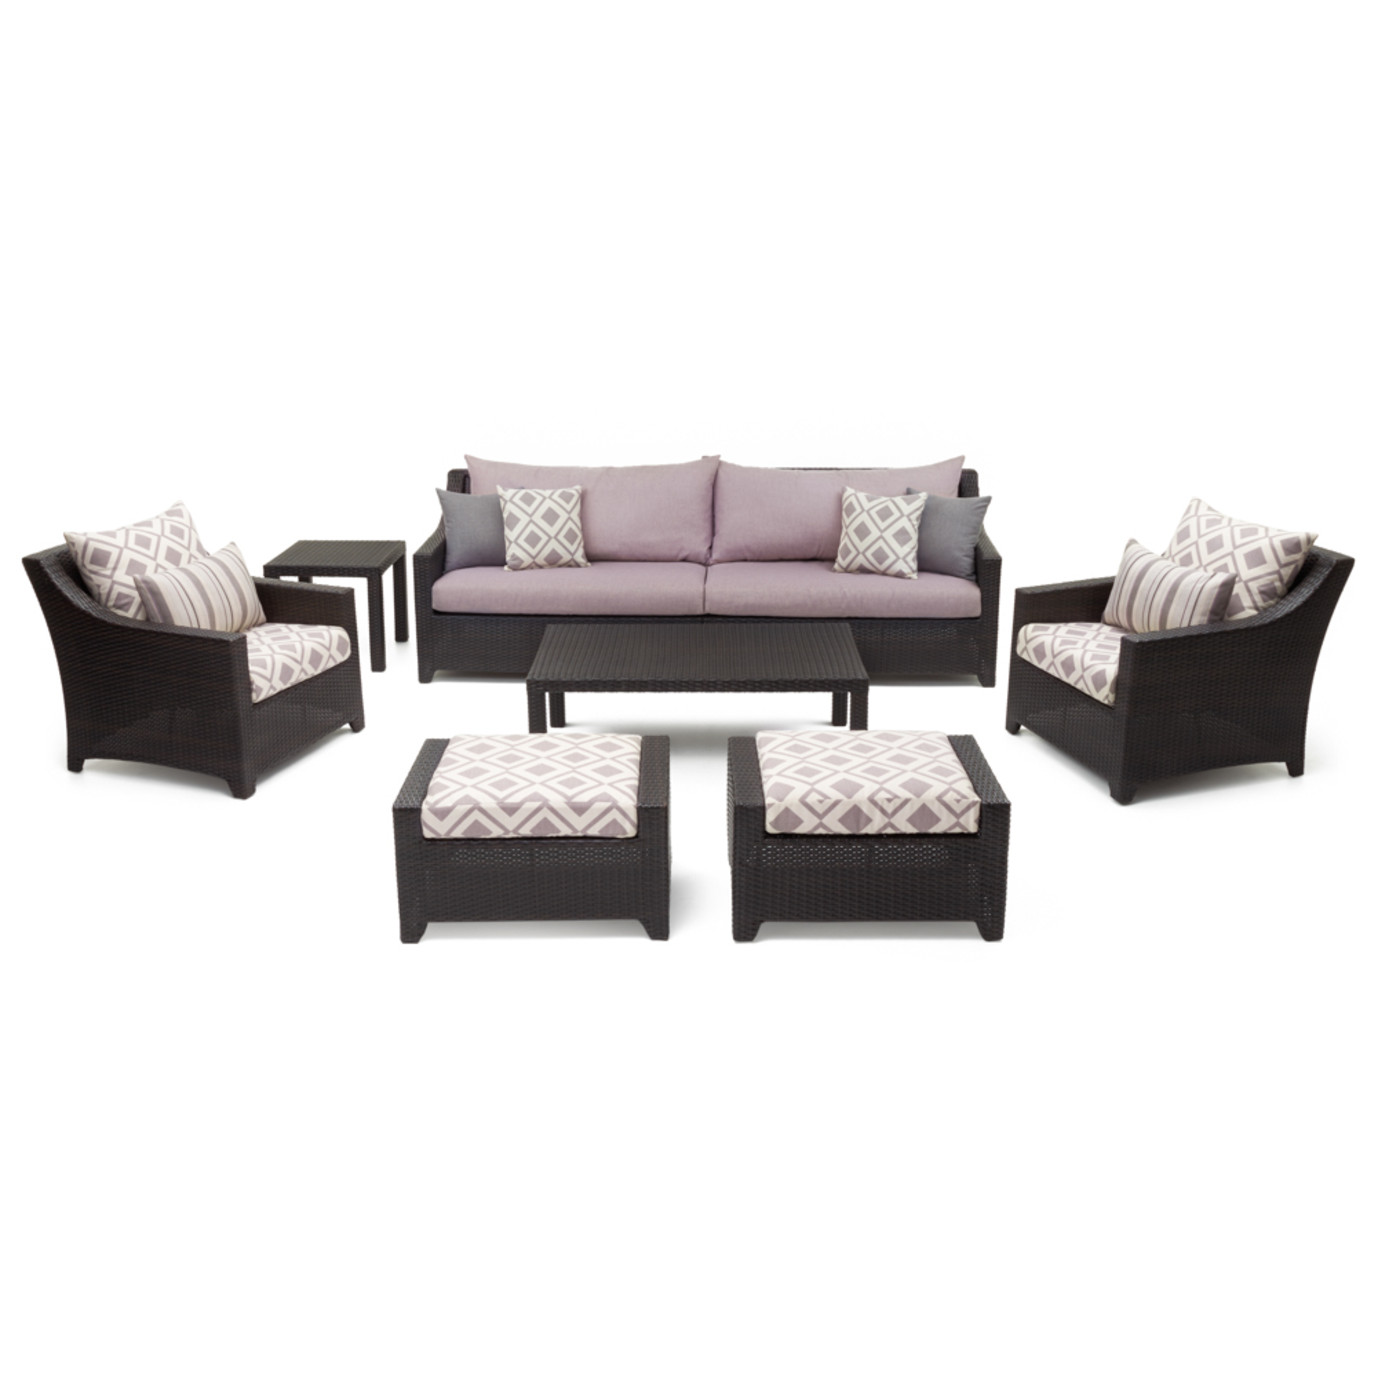 Deco™ 8pc Sofa & Club Chair Set - Wisteria Lavender